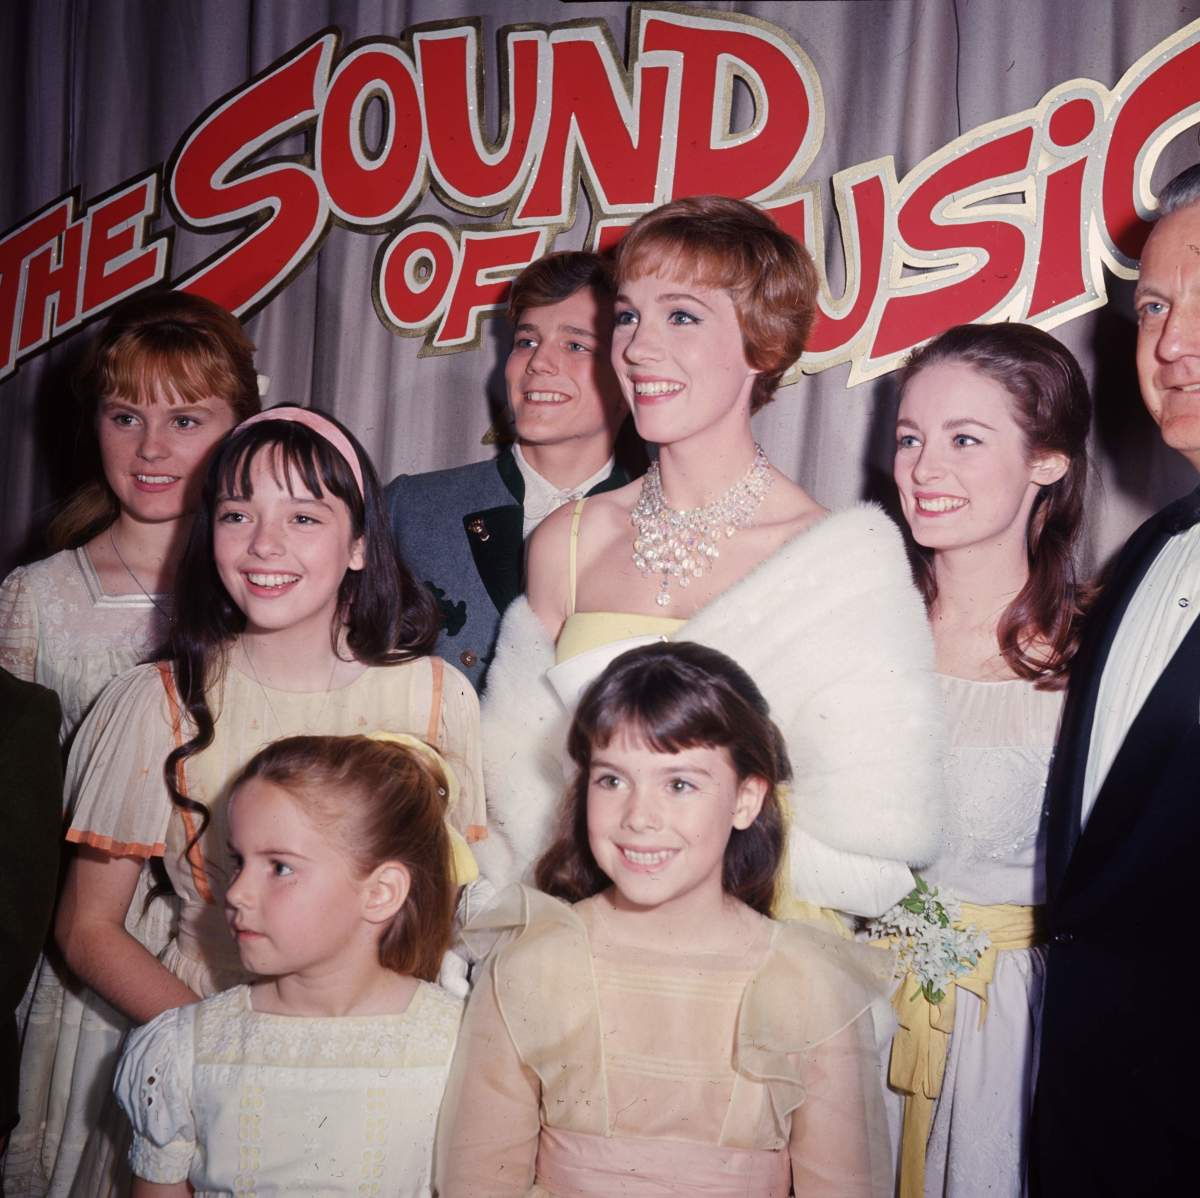 """The Real History Behind """"The Sound of Music"""" - HISTORY"""